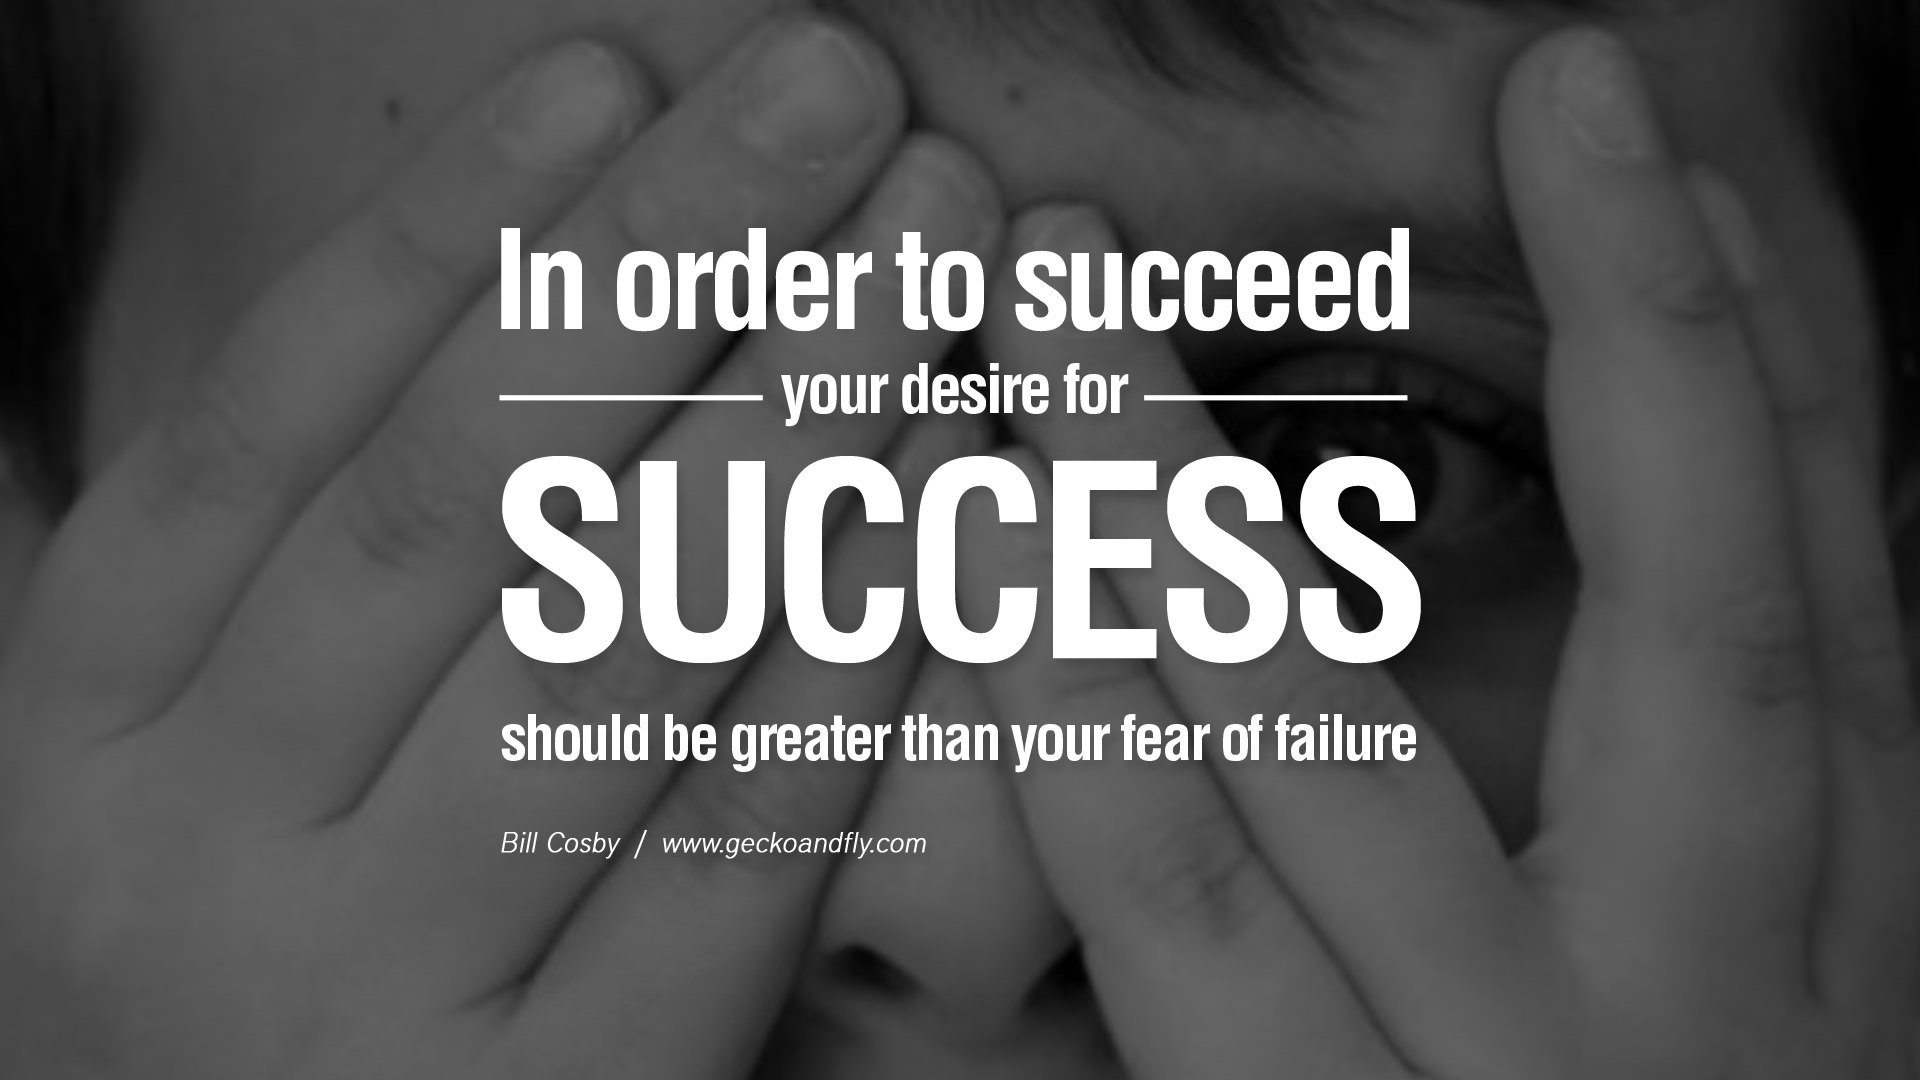 Motivational Quotes About Success: Motivational Quotes For Success In Business. QuotesGram